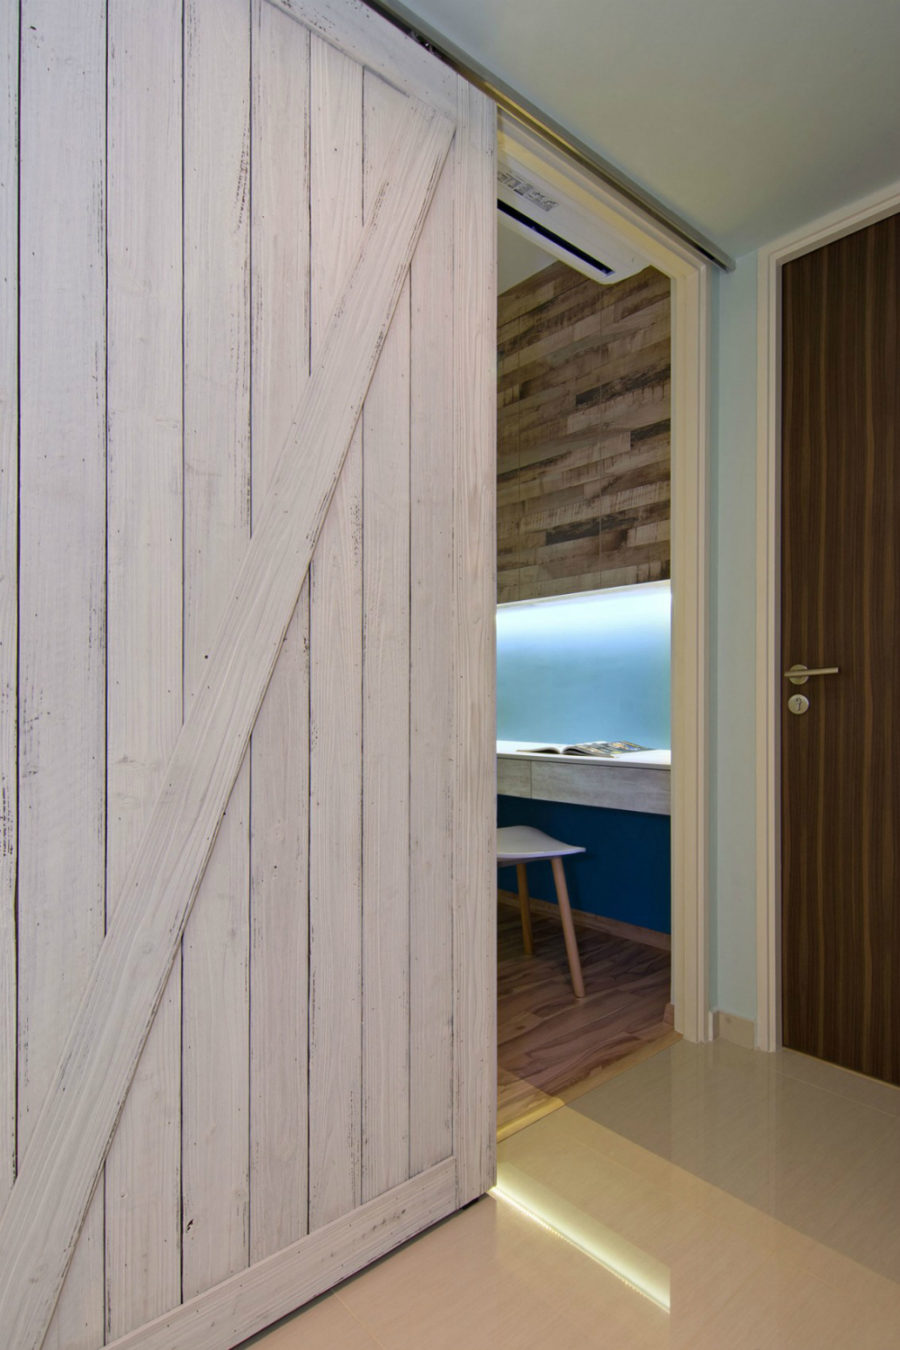 Barn doors in a Beach Home in Singapore